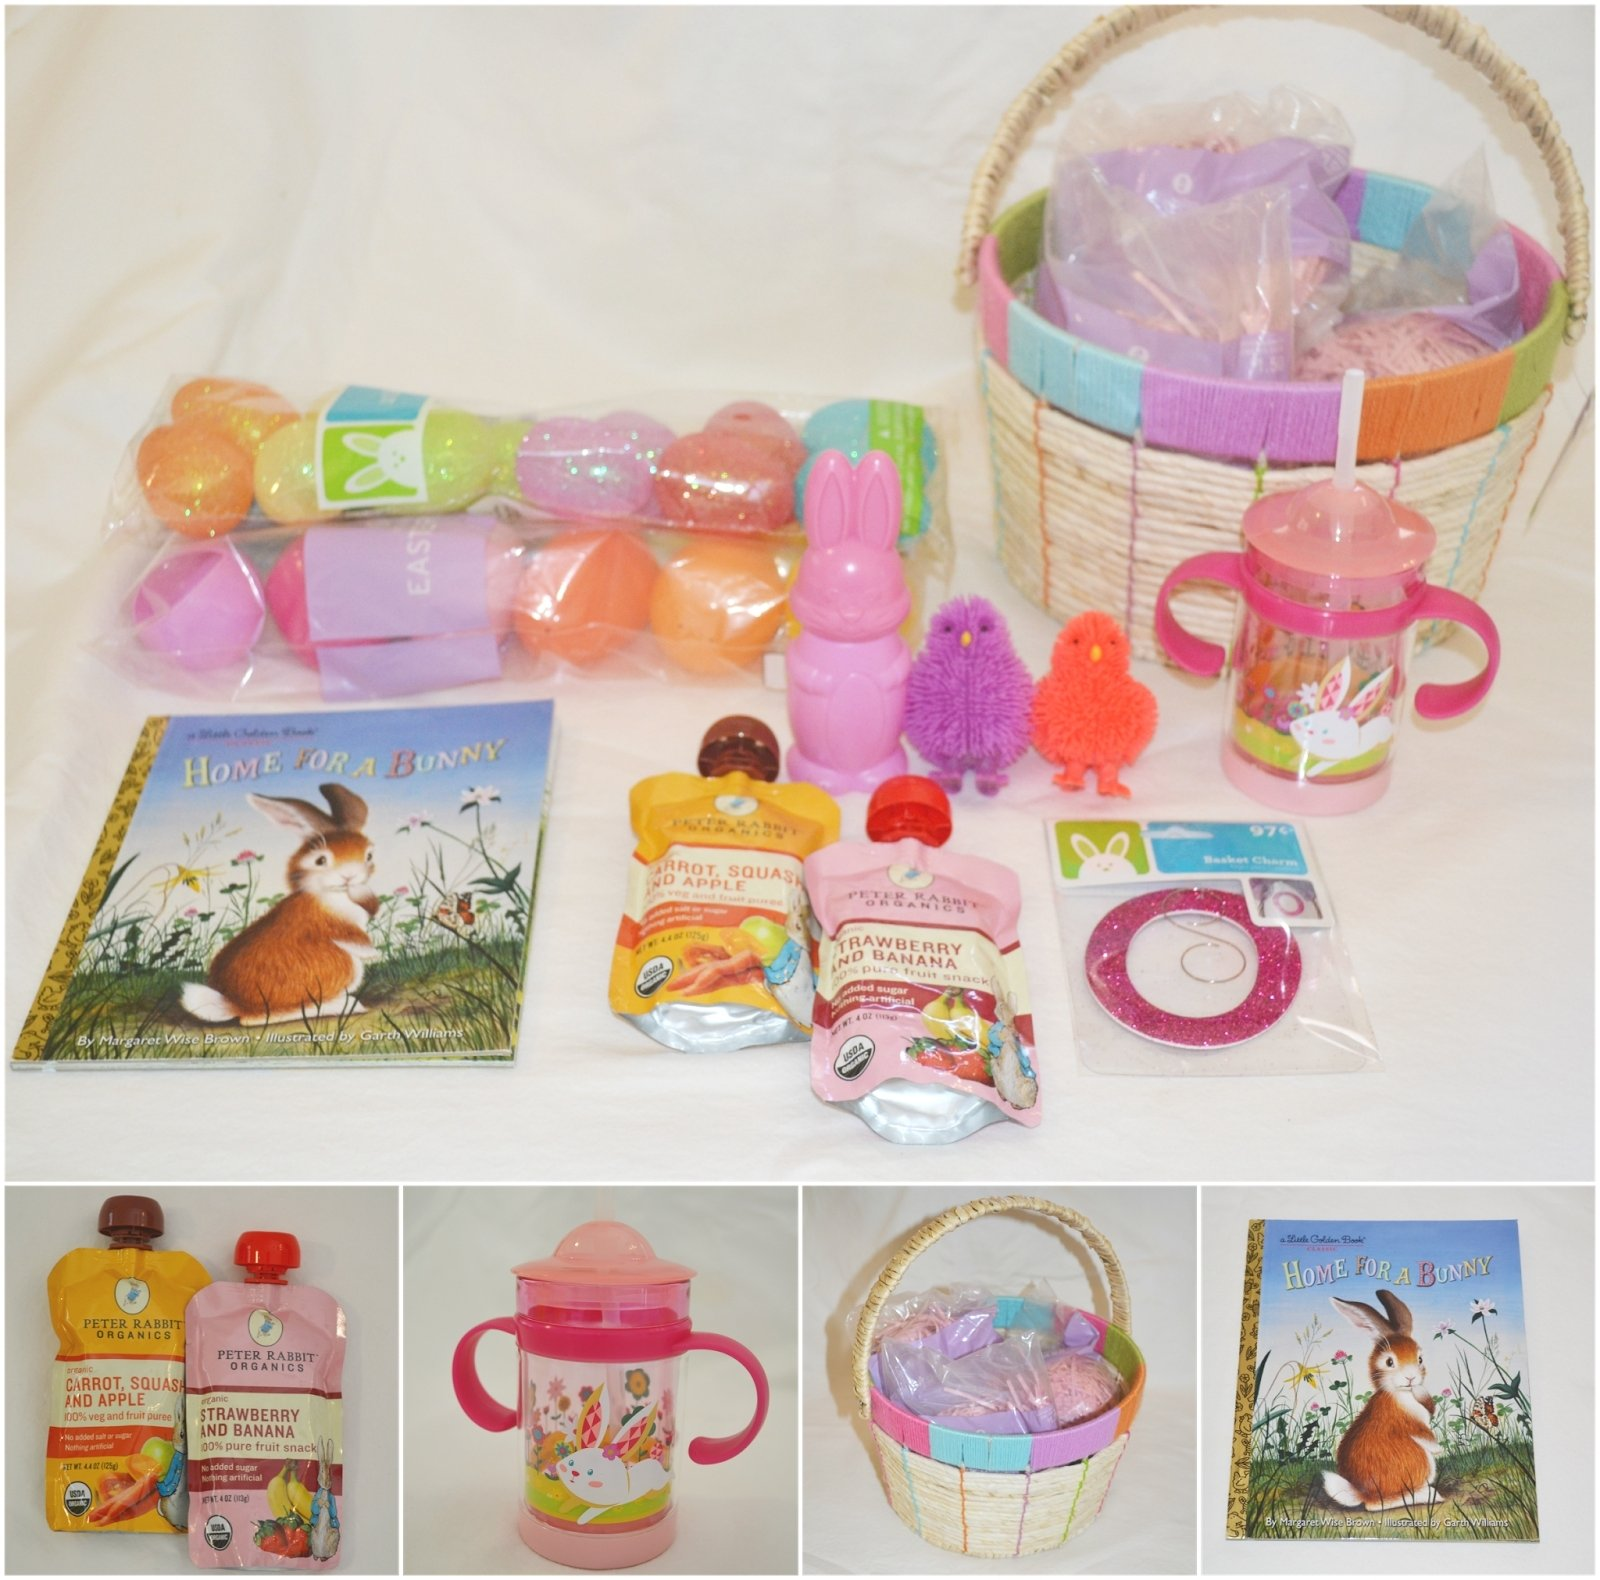 10 Stylish Baby First Easter Basket Ideas first easter basket ideas for baby girl dette cakes blog